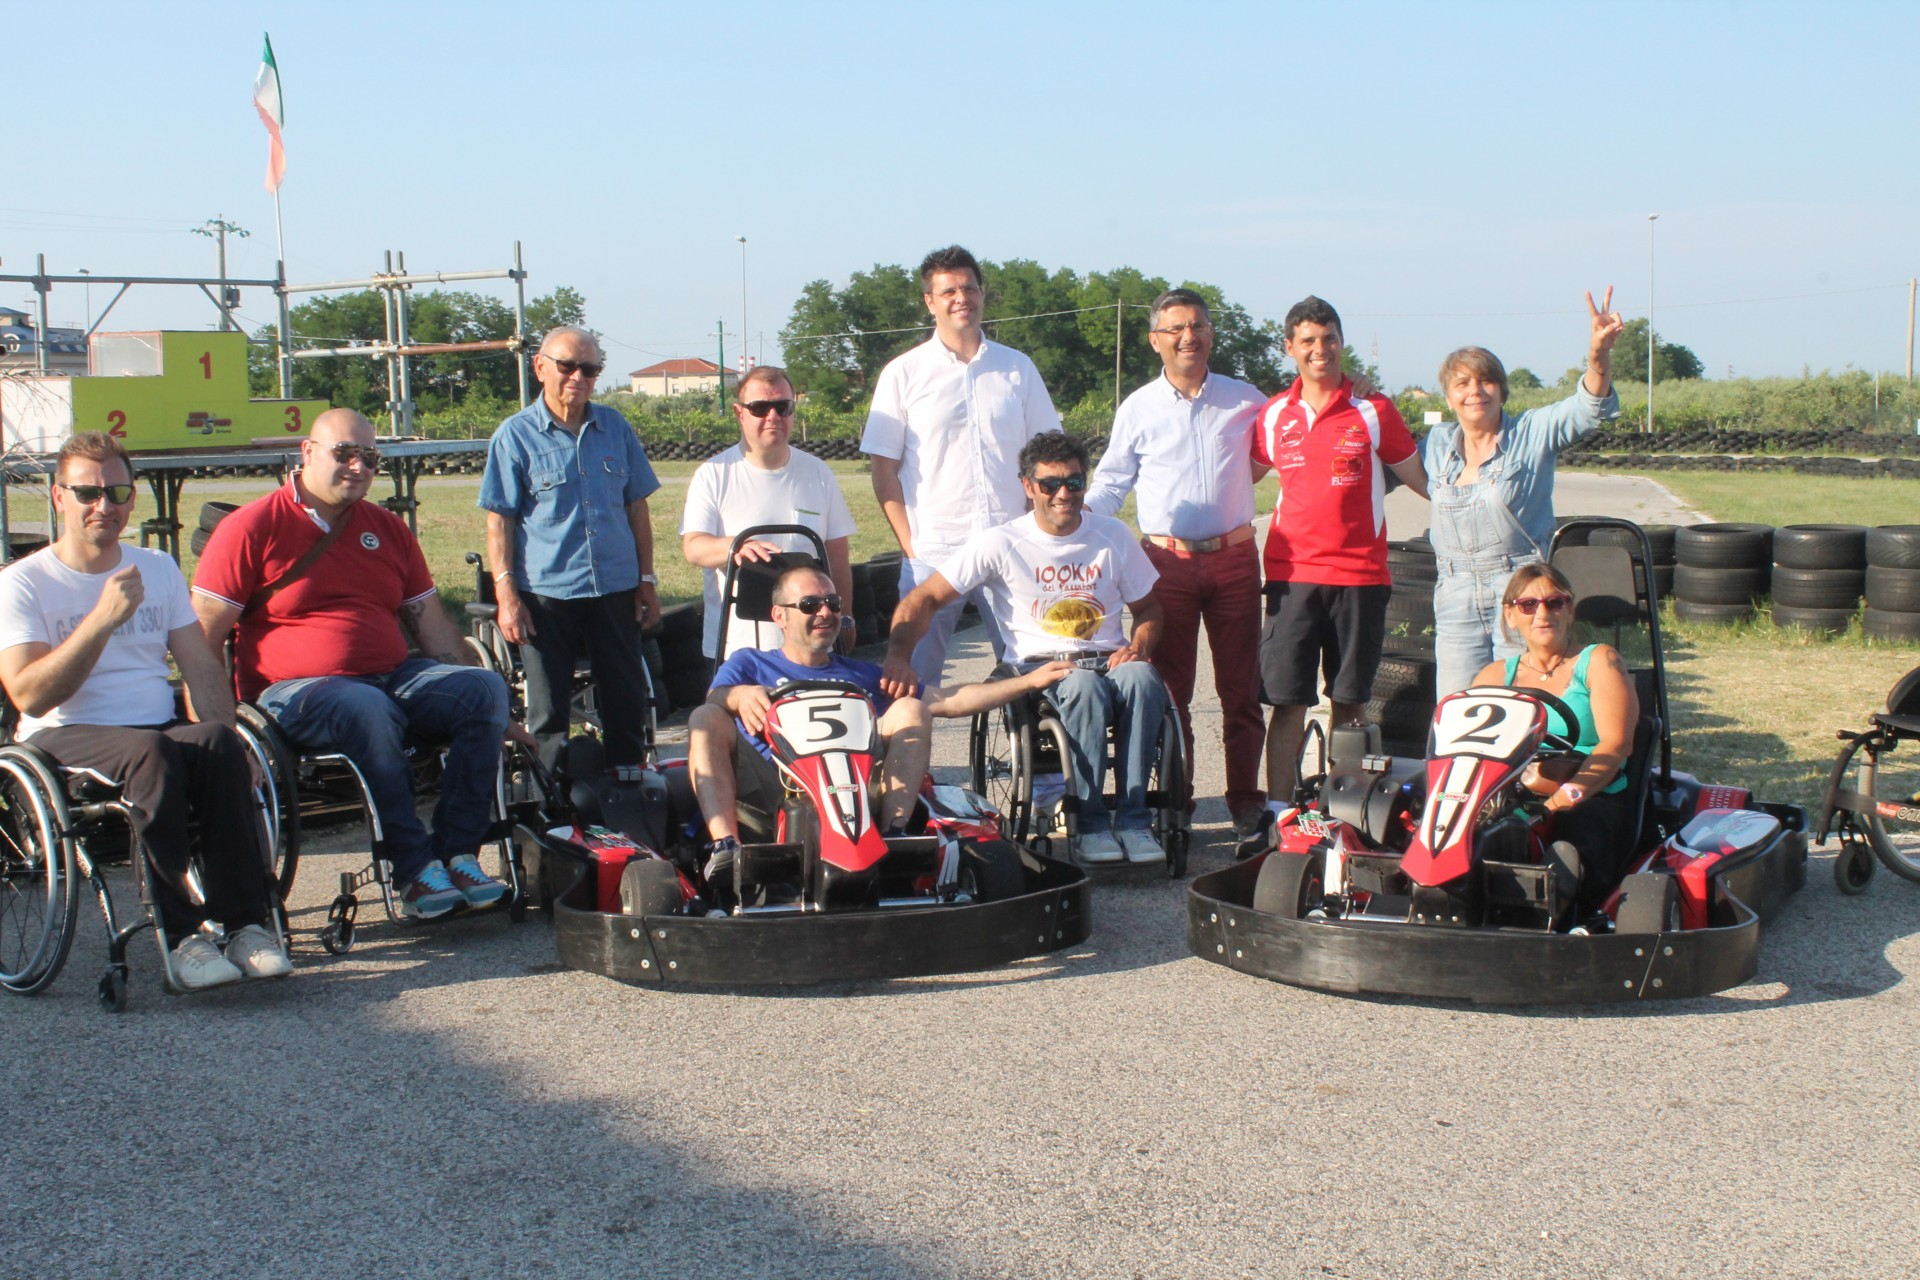 go kart per disabili-mini speed-associazione sportiva mini speed-ortona mini speed-pista mini speed-go kart per disabili mini speed ortona-ability channel